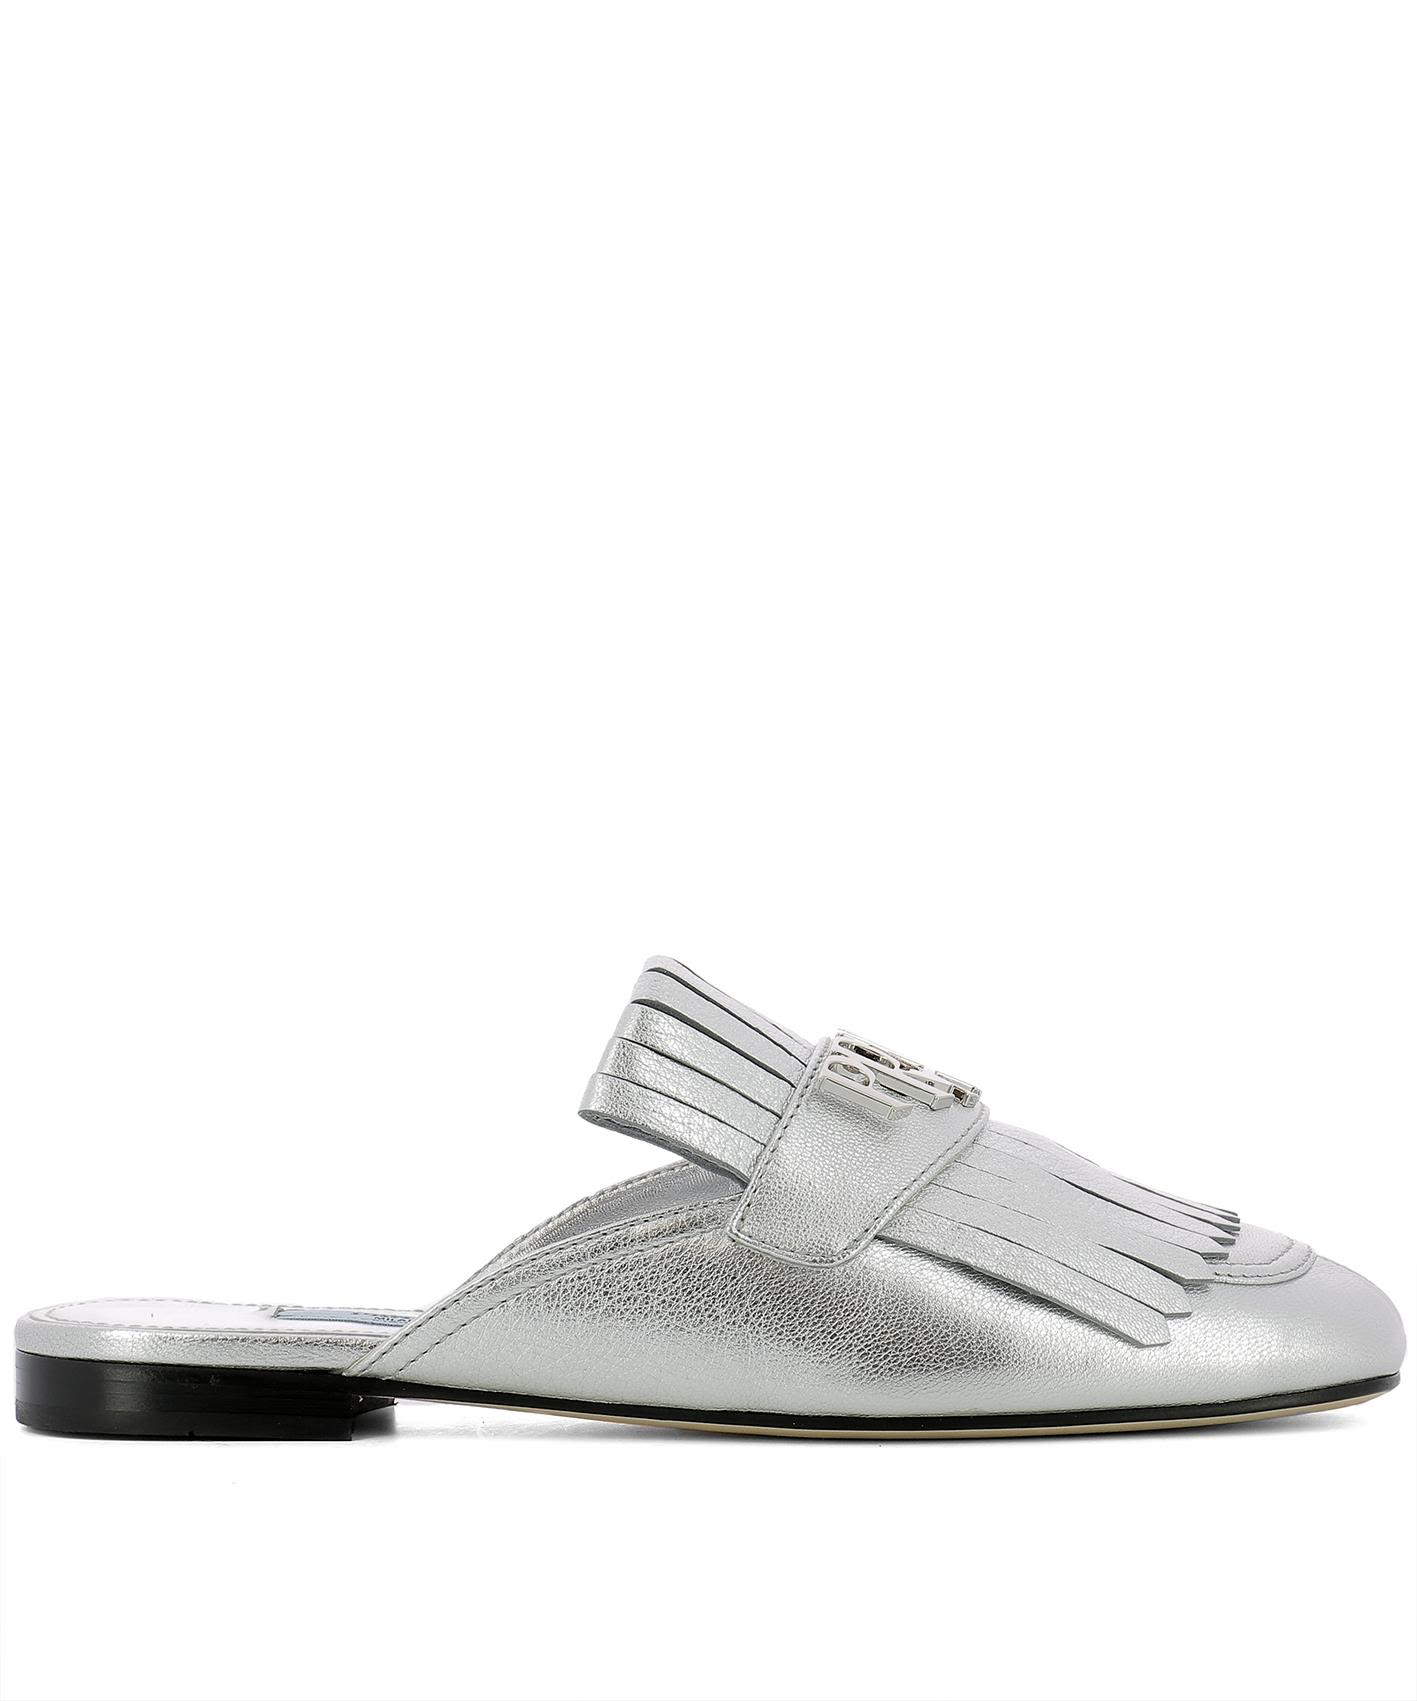 SILVER LEATHER SLIPPERS